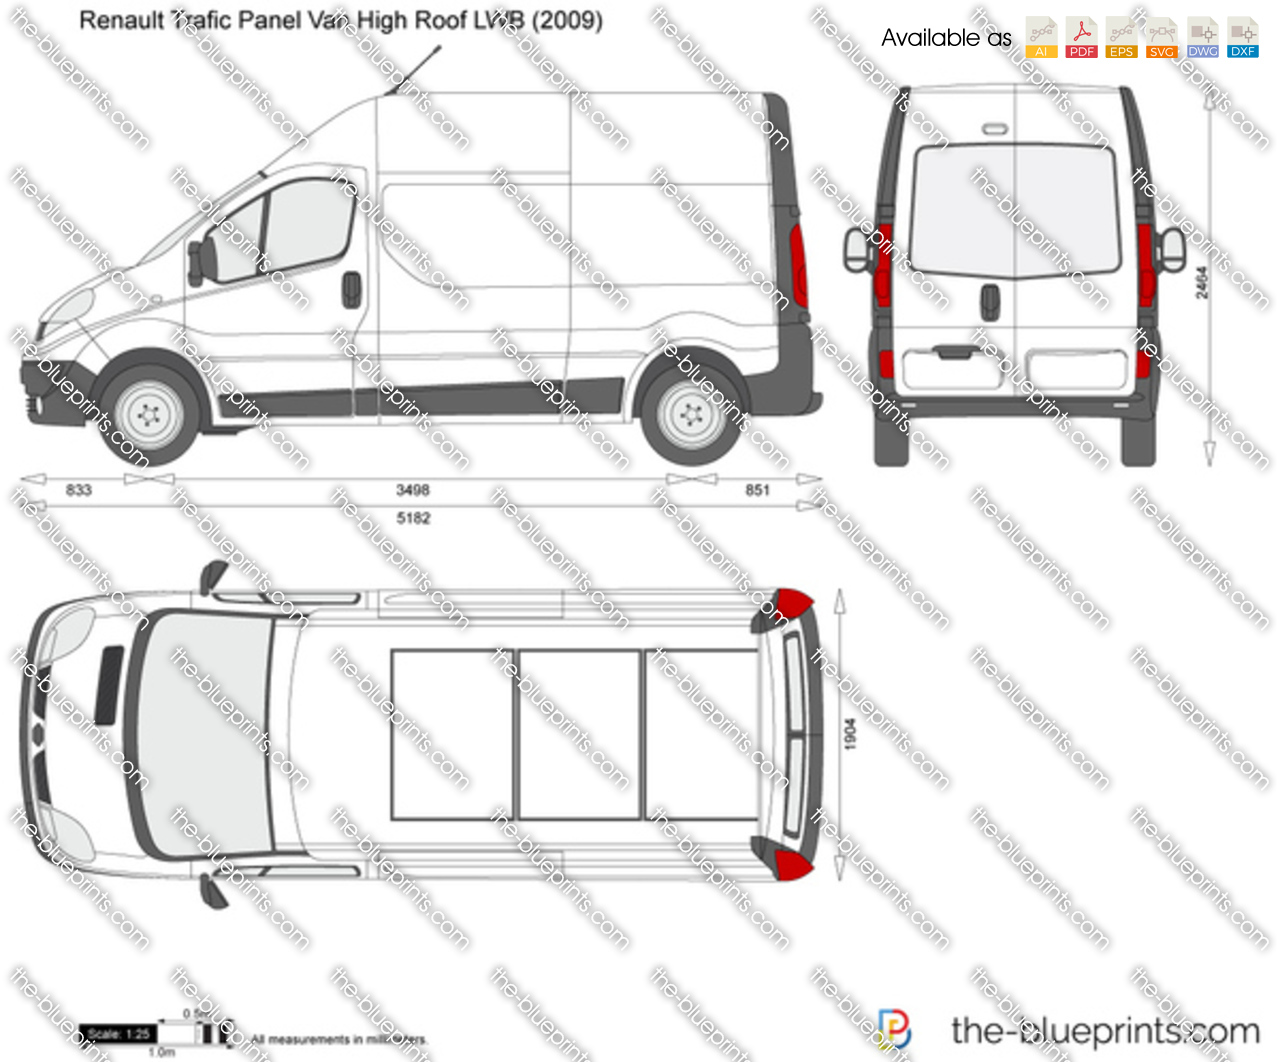 renault trafic high top van dimensions. Black Bedroom Furniture Sets. Home Design Ideas